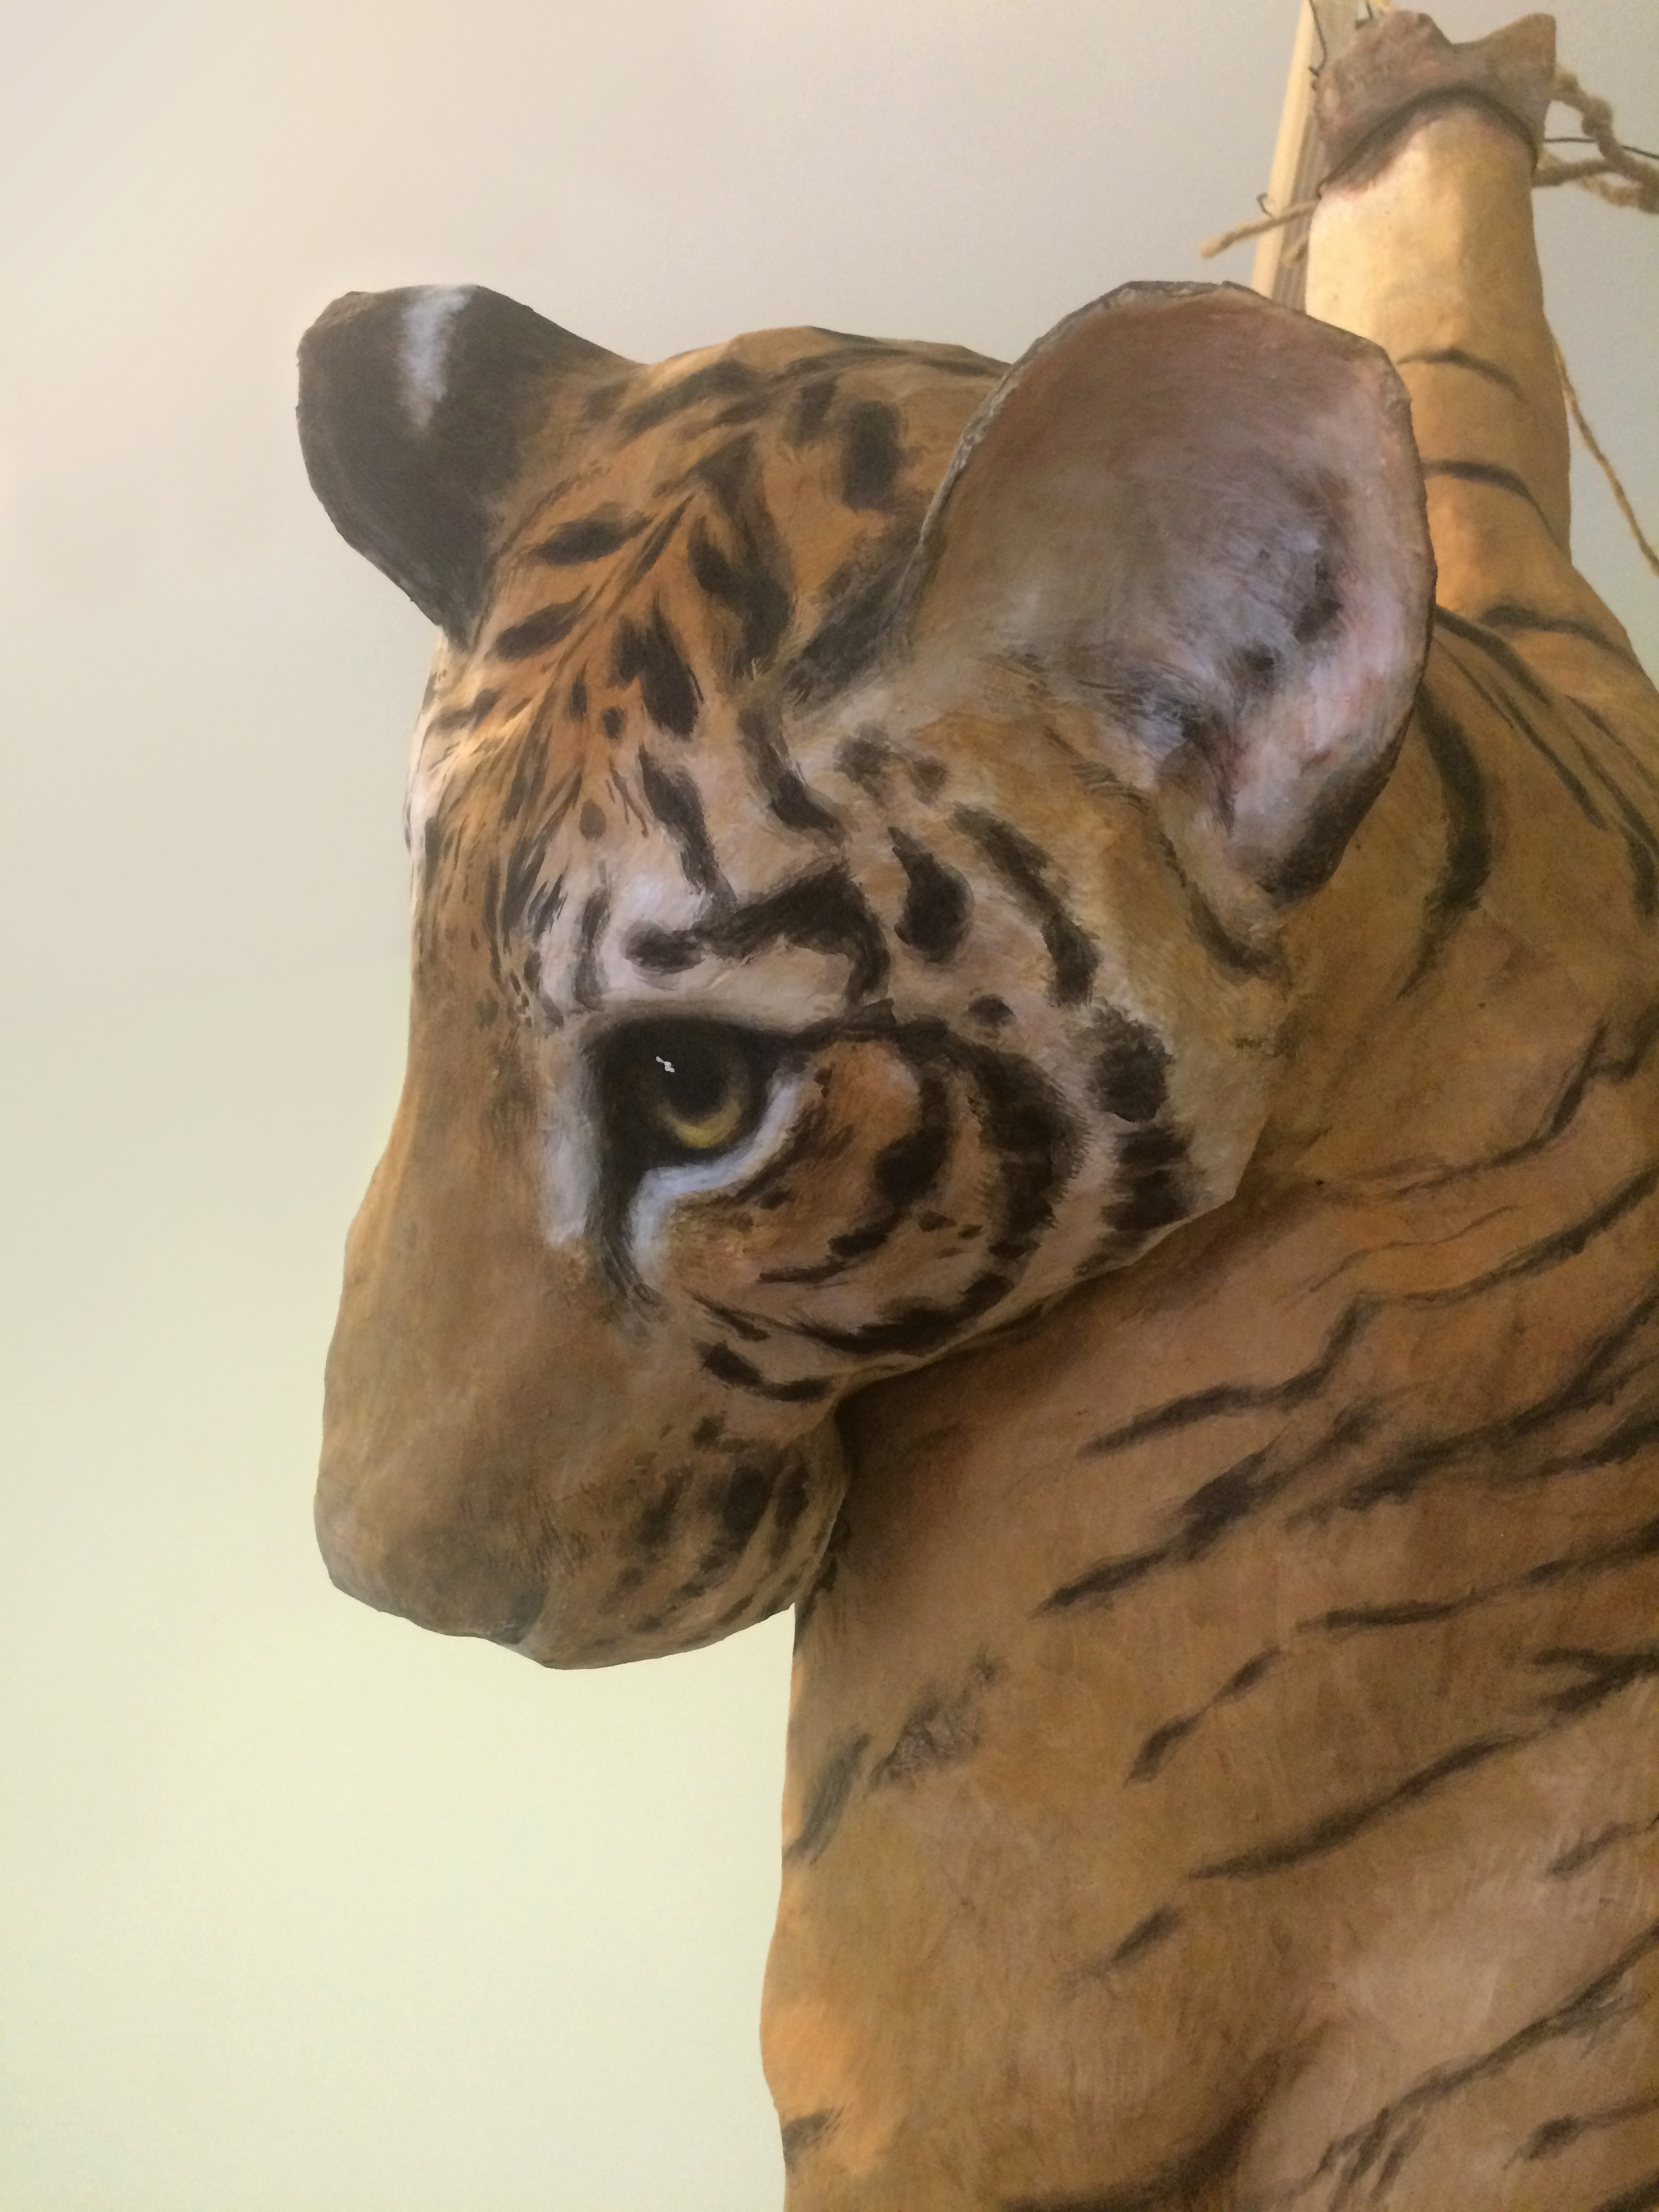 Tigers are hunted as trophies and kept as pets by people around the world.  This piece, depicting an ensnared, juvenile tiger,is intended to address directly the poaching of wild tigers and indirectly the exploitation of captive tigers and the trade in tiger parts. (Emily Schnall sculpture)